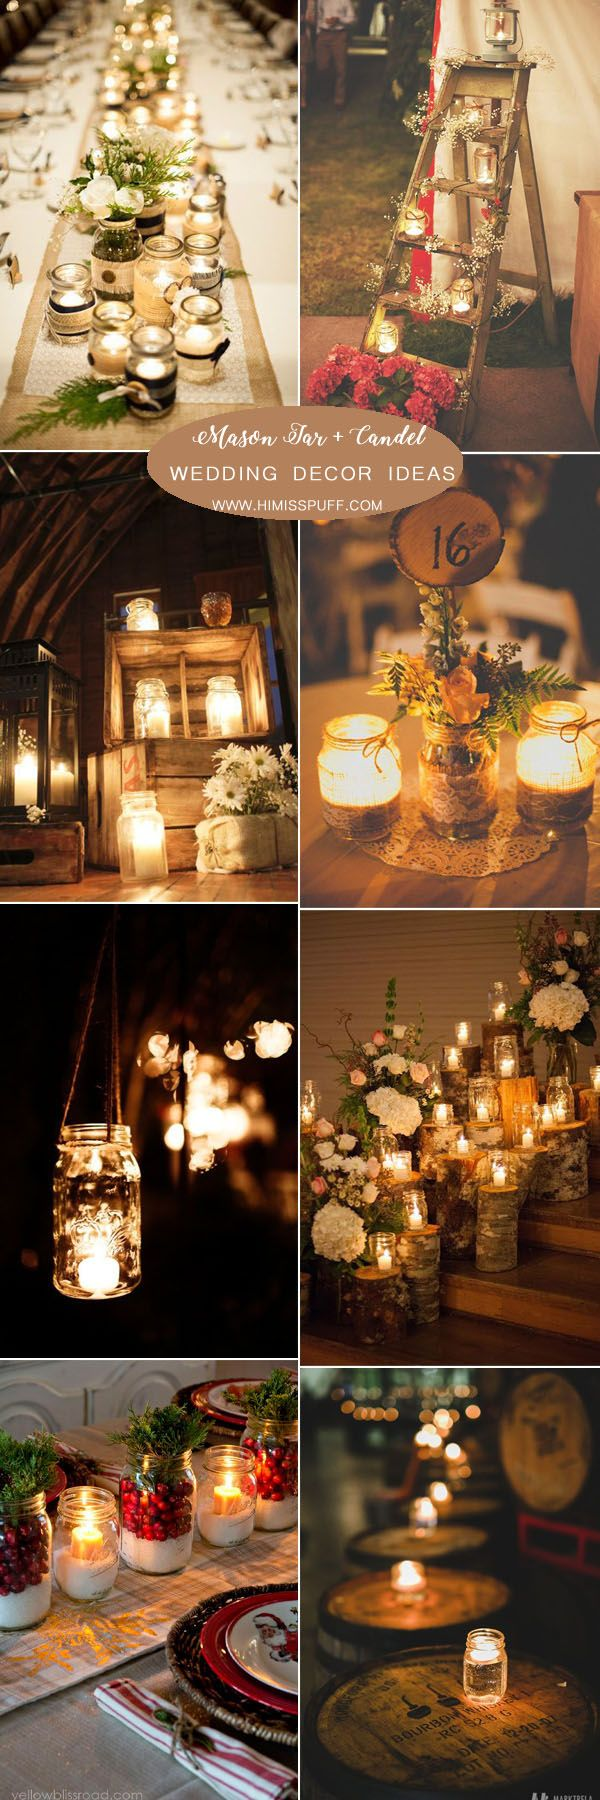 100+ Best Rustic Chic Wedding images in 2020 | wedding, rustic chic wedding,  rustic wedding